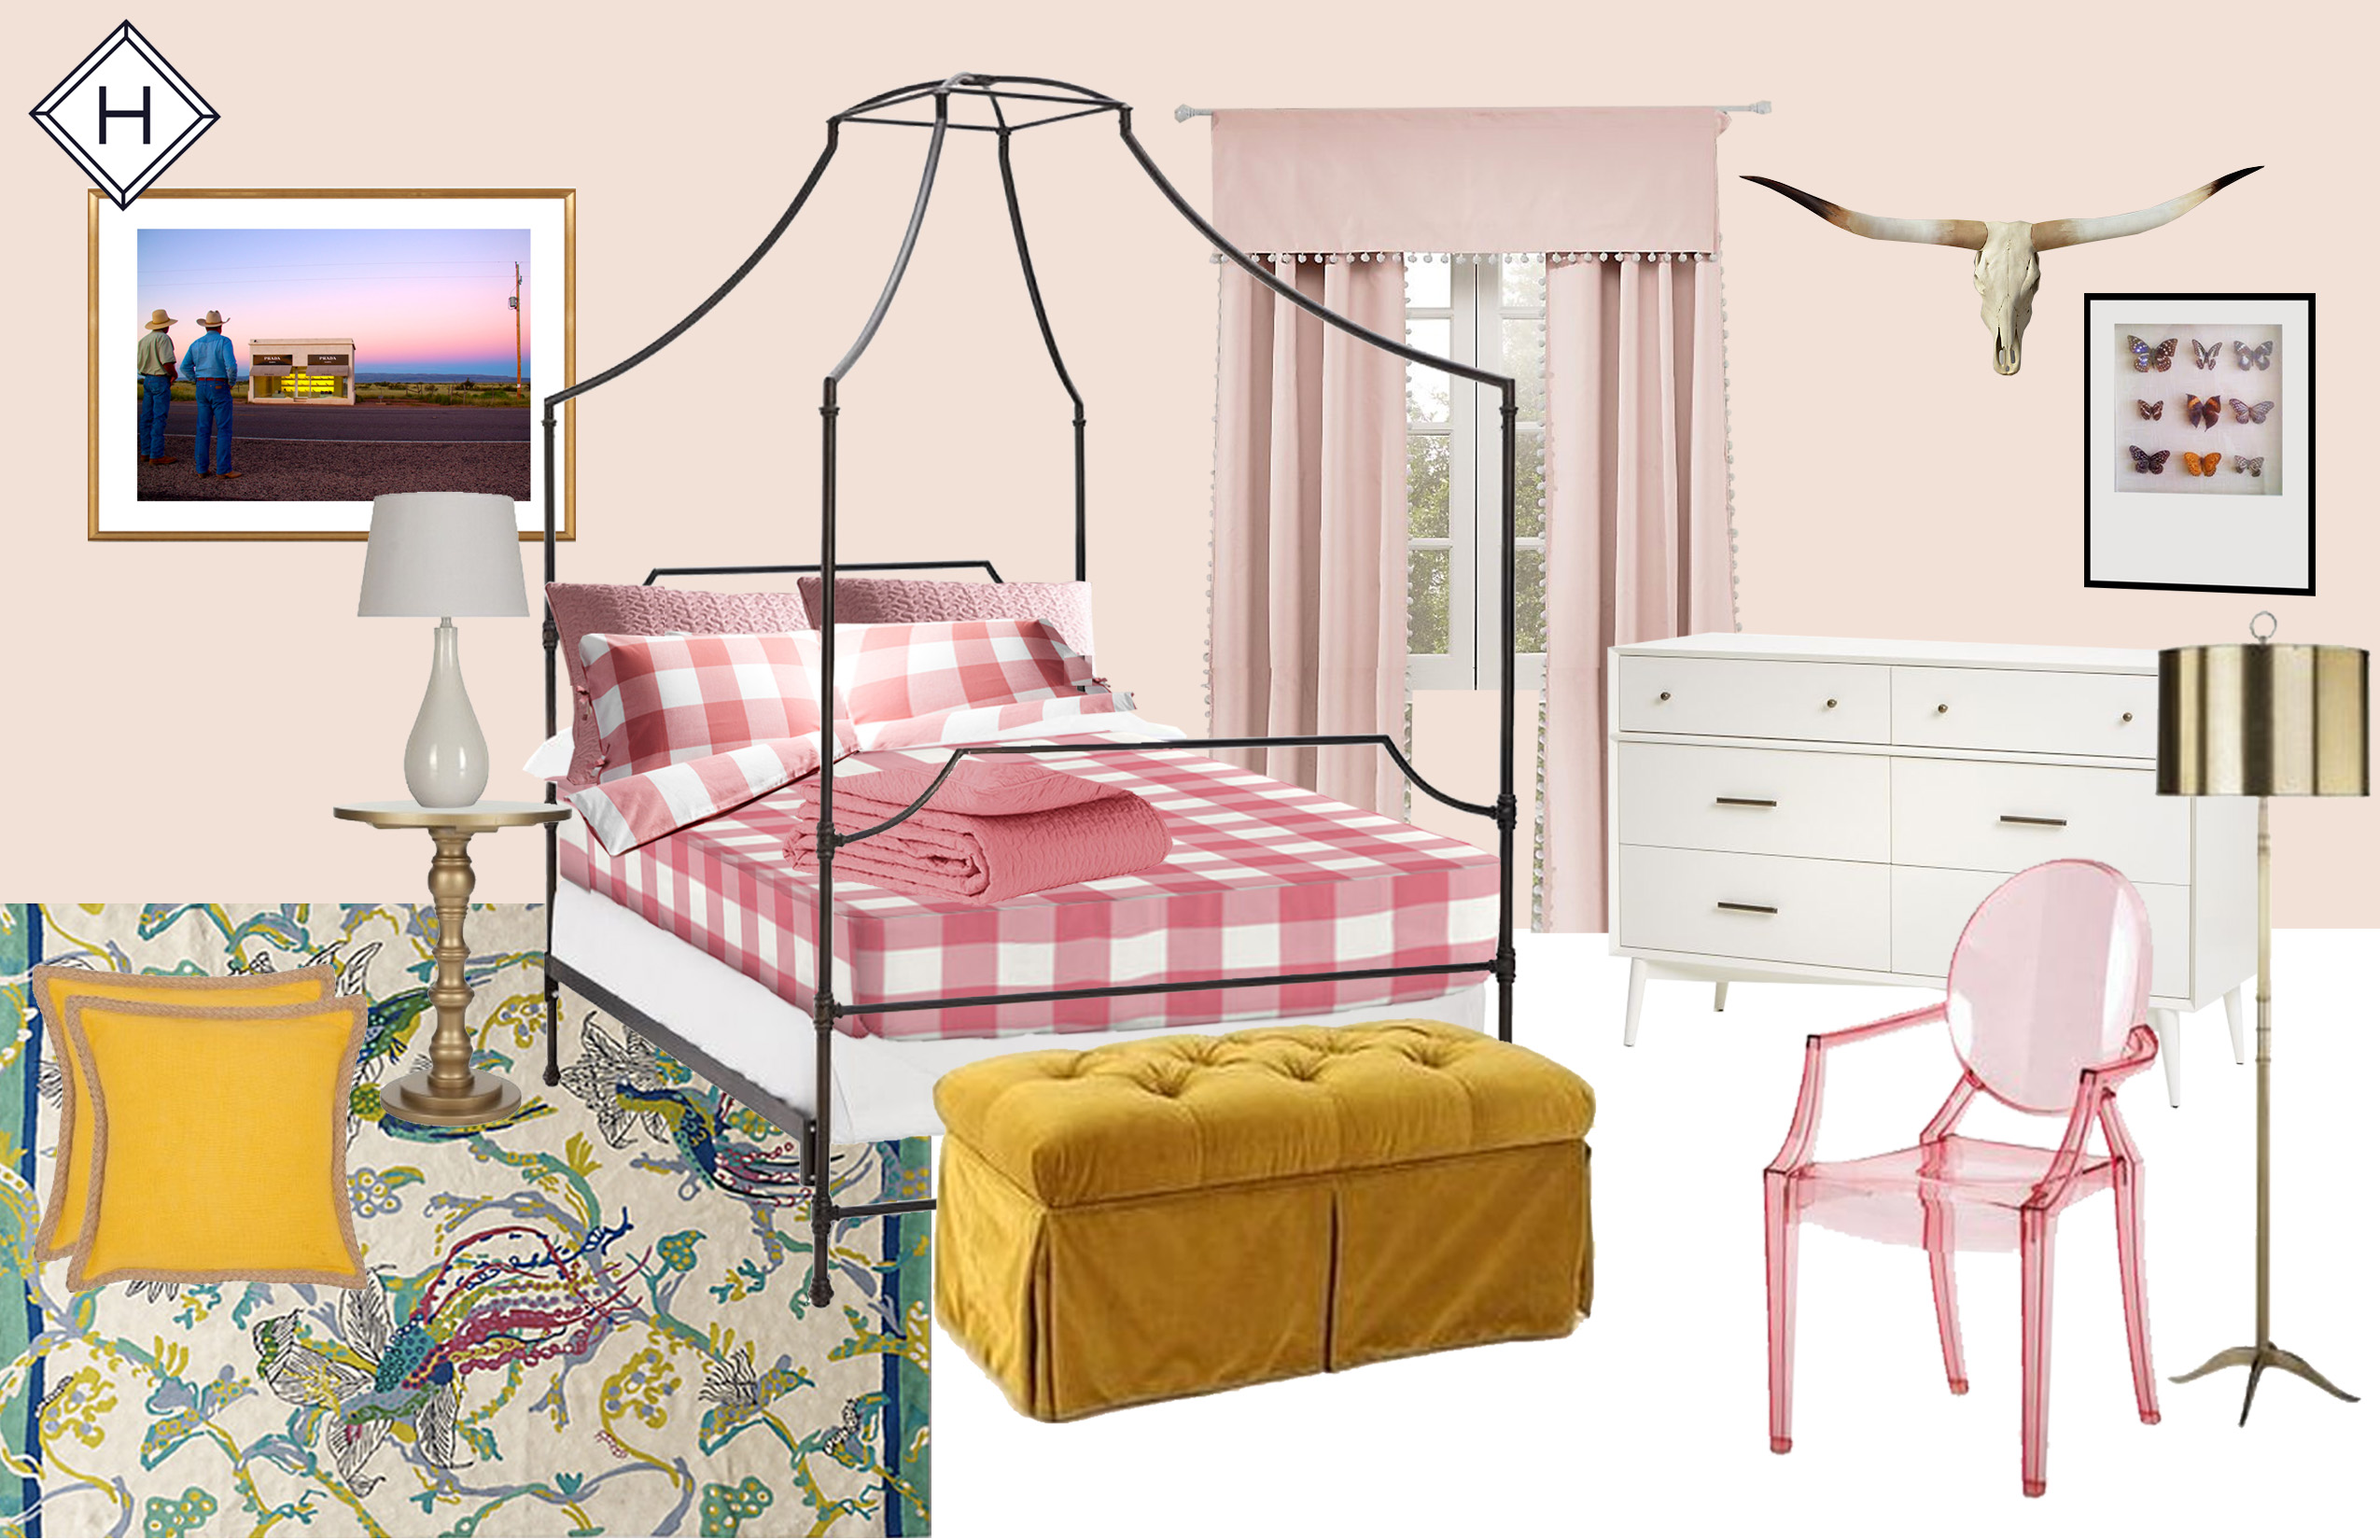 A Whimsical Girls Bedroom Design by Havenly